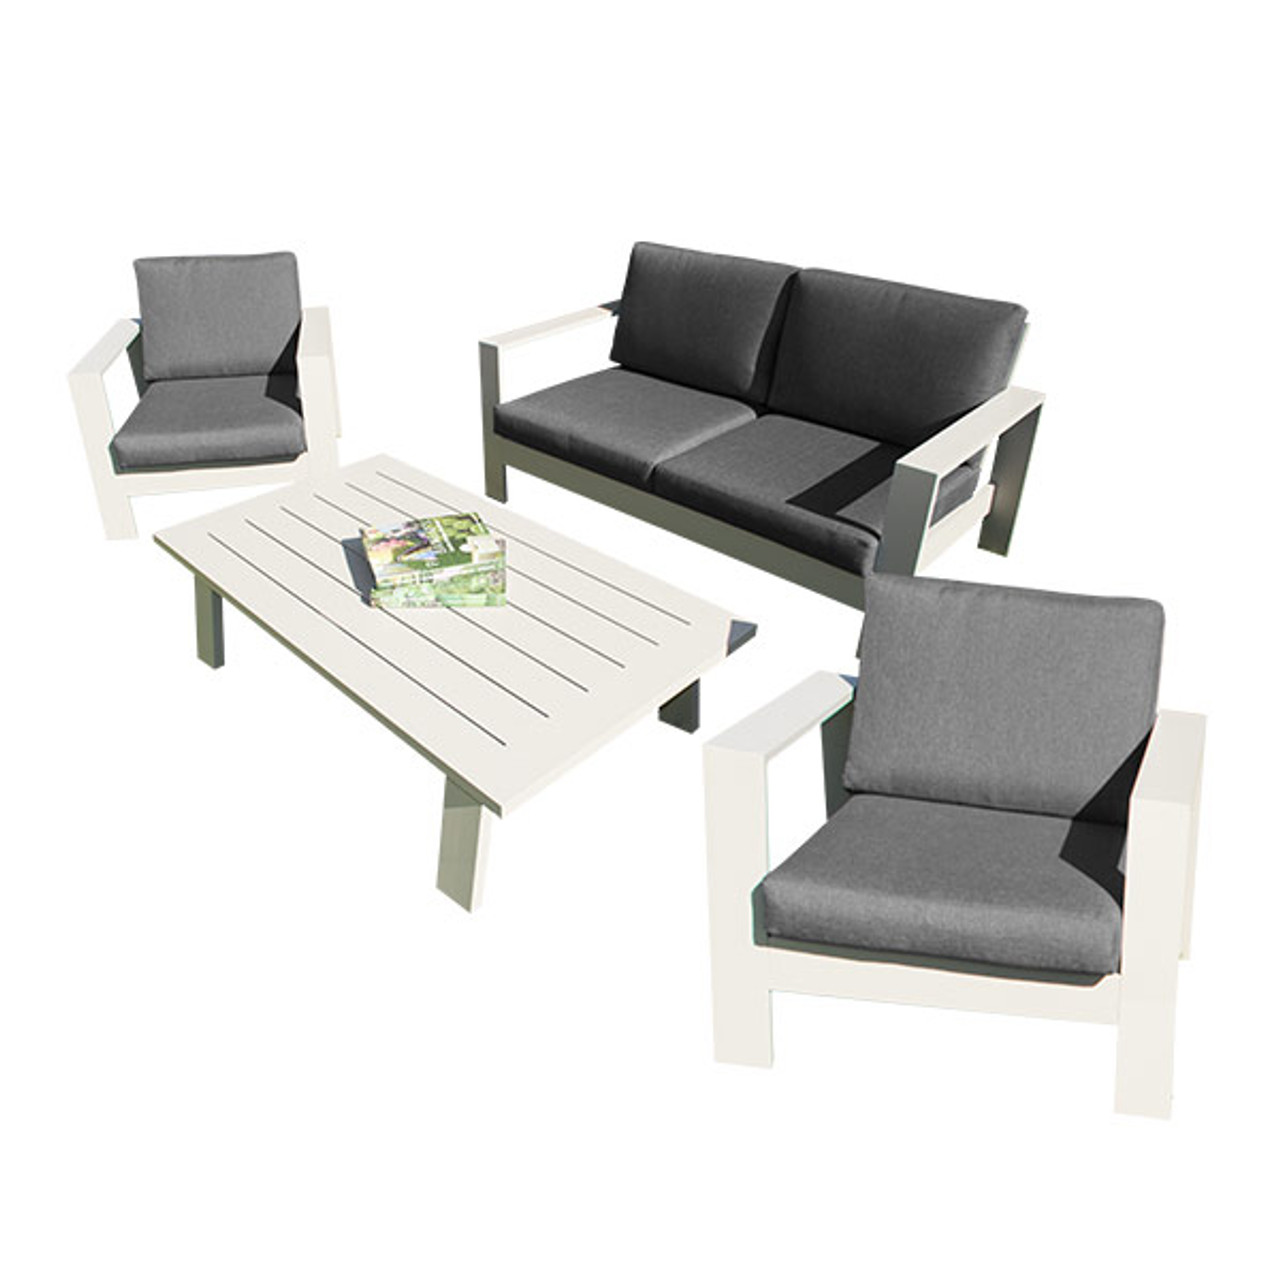 Pedesa Outdoor Lounge Setting